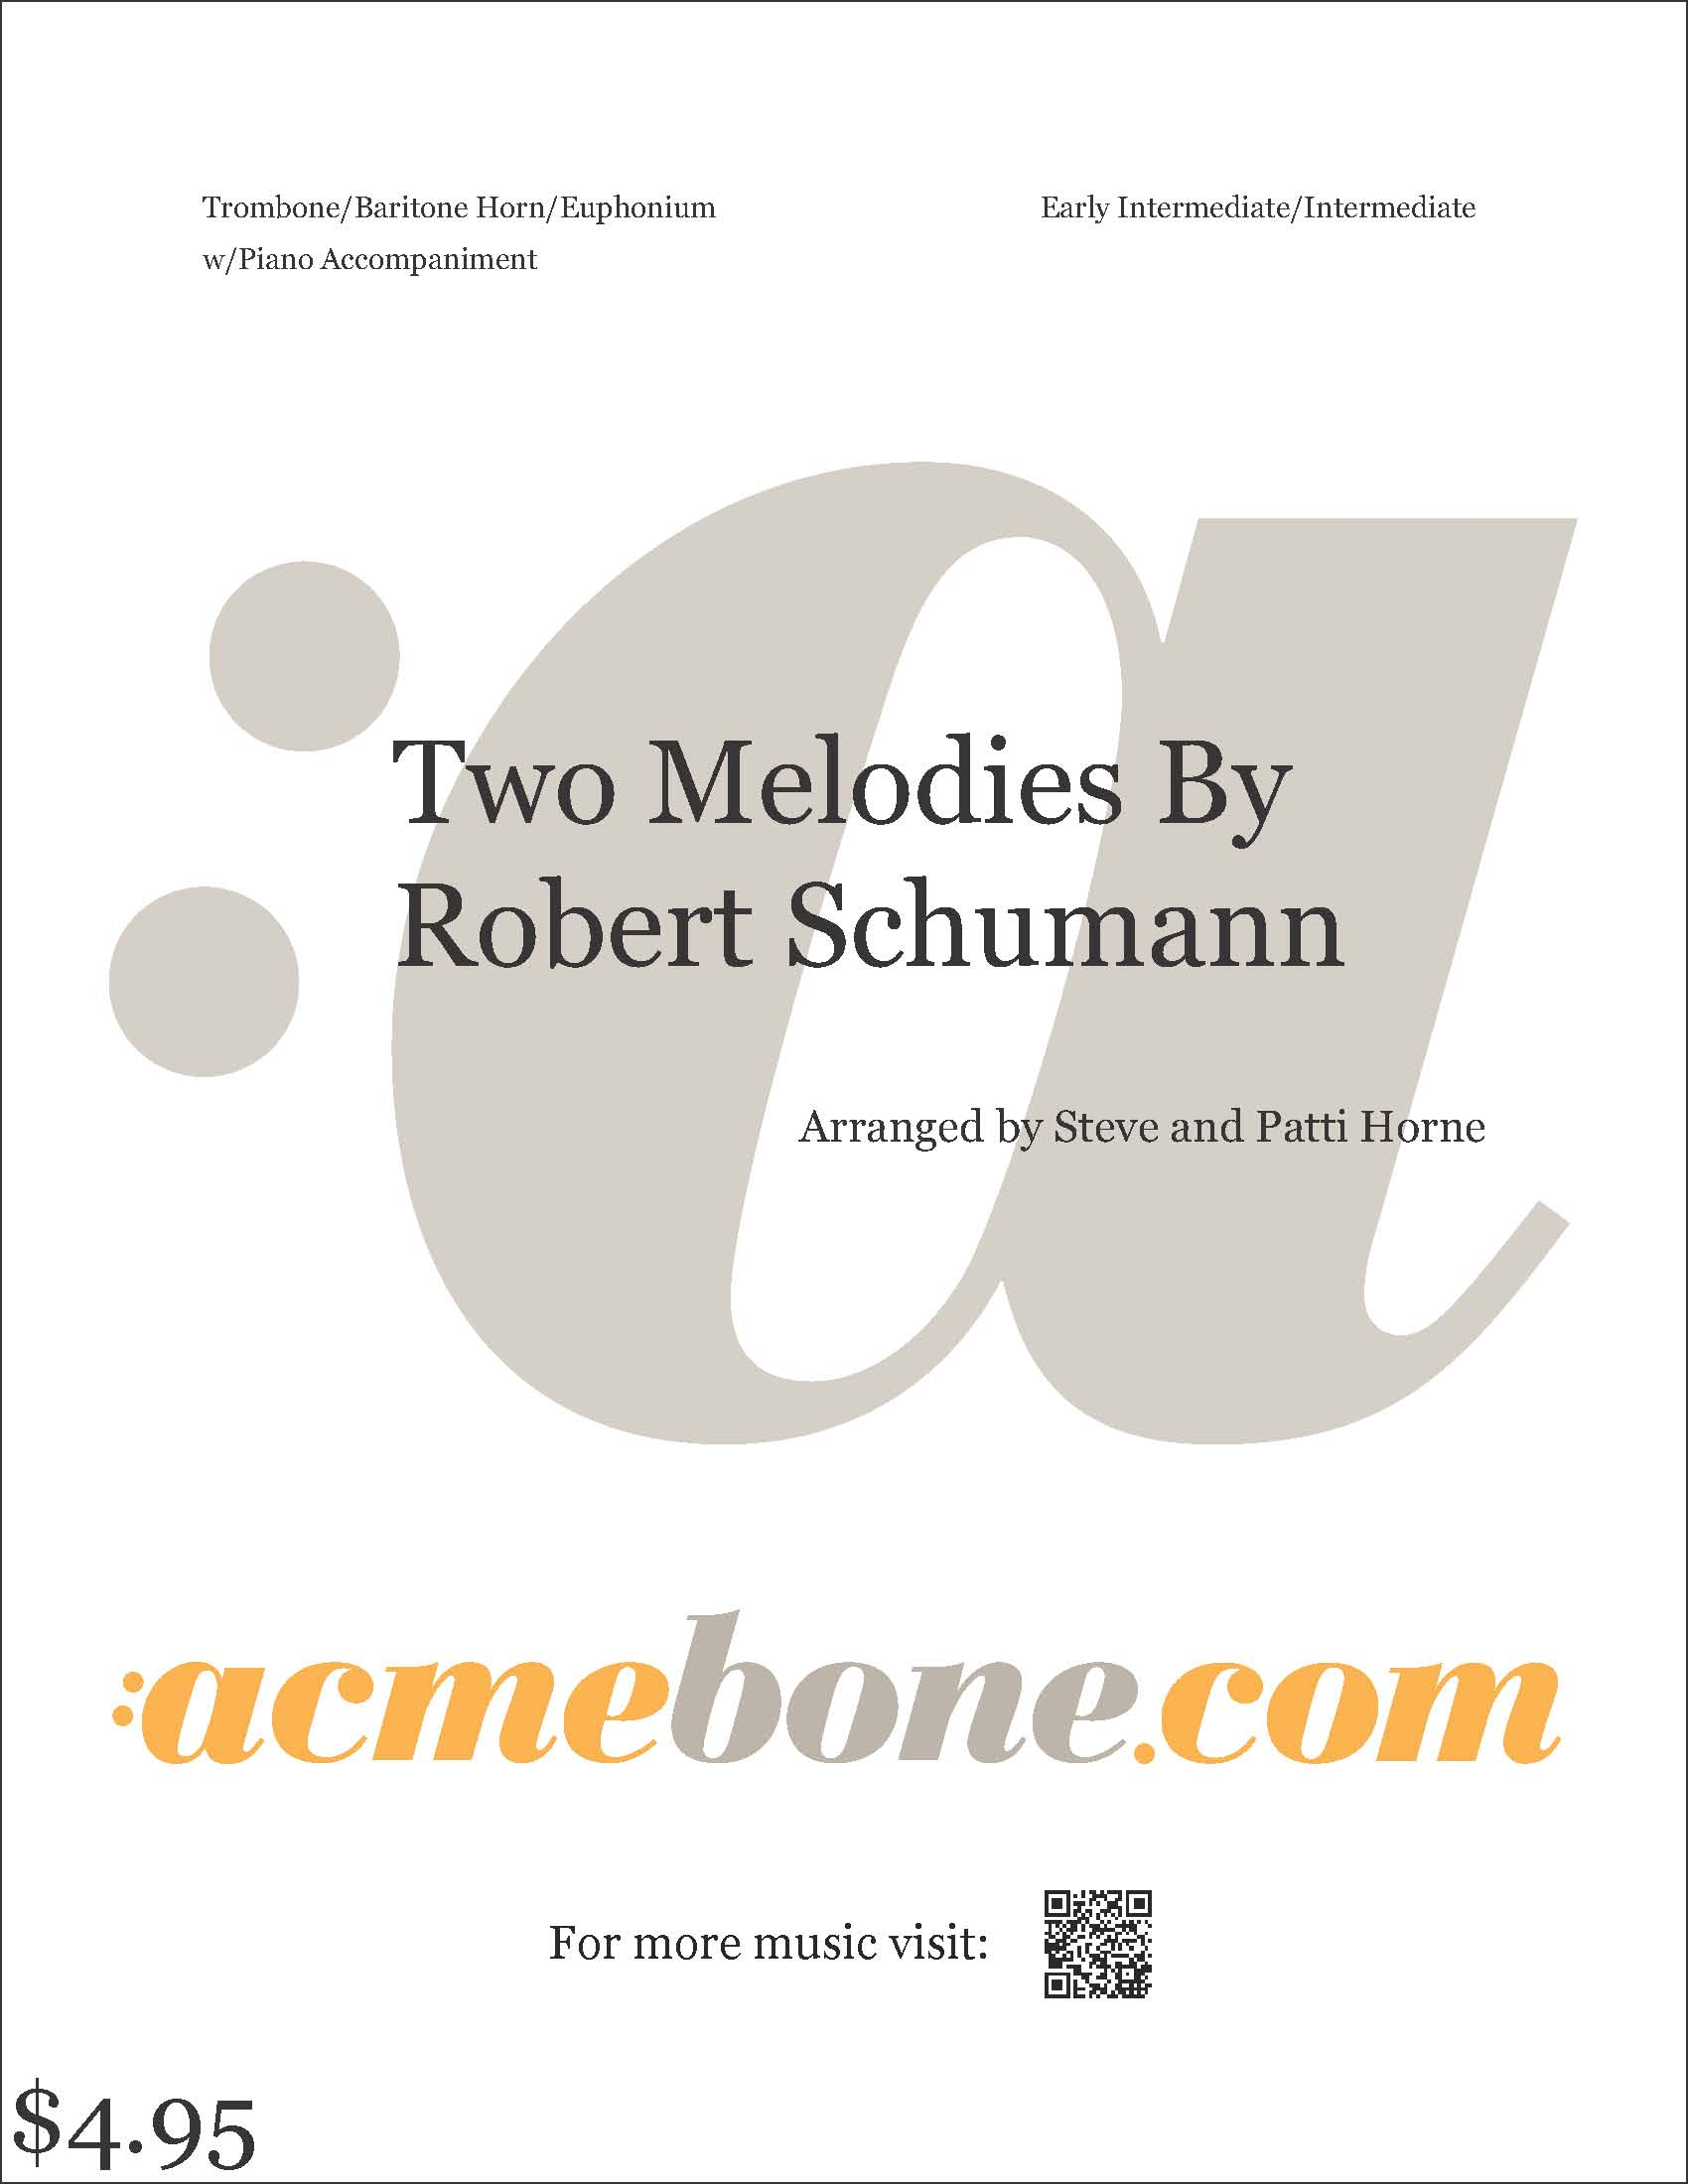 Two Melodies By Robert Schumann_digital_cover_w-bo_price.jpg